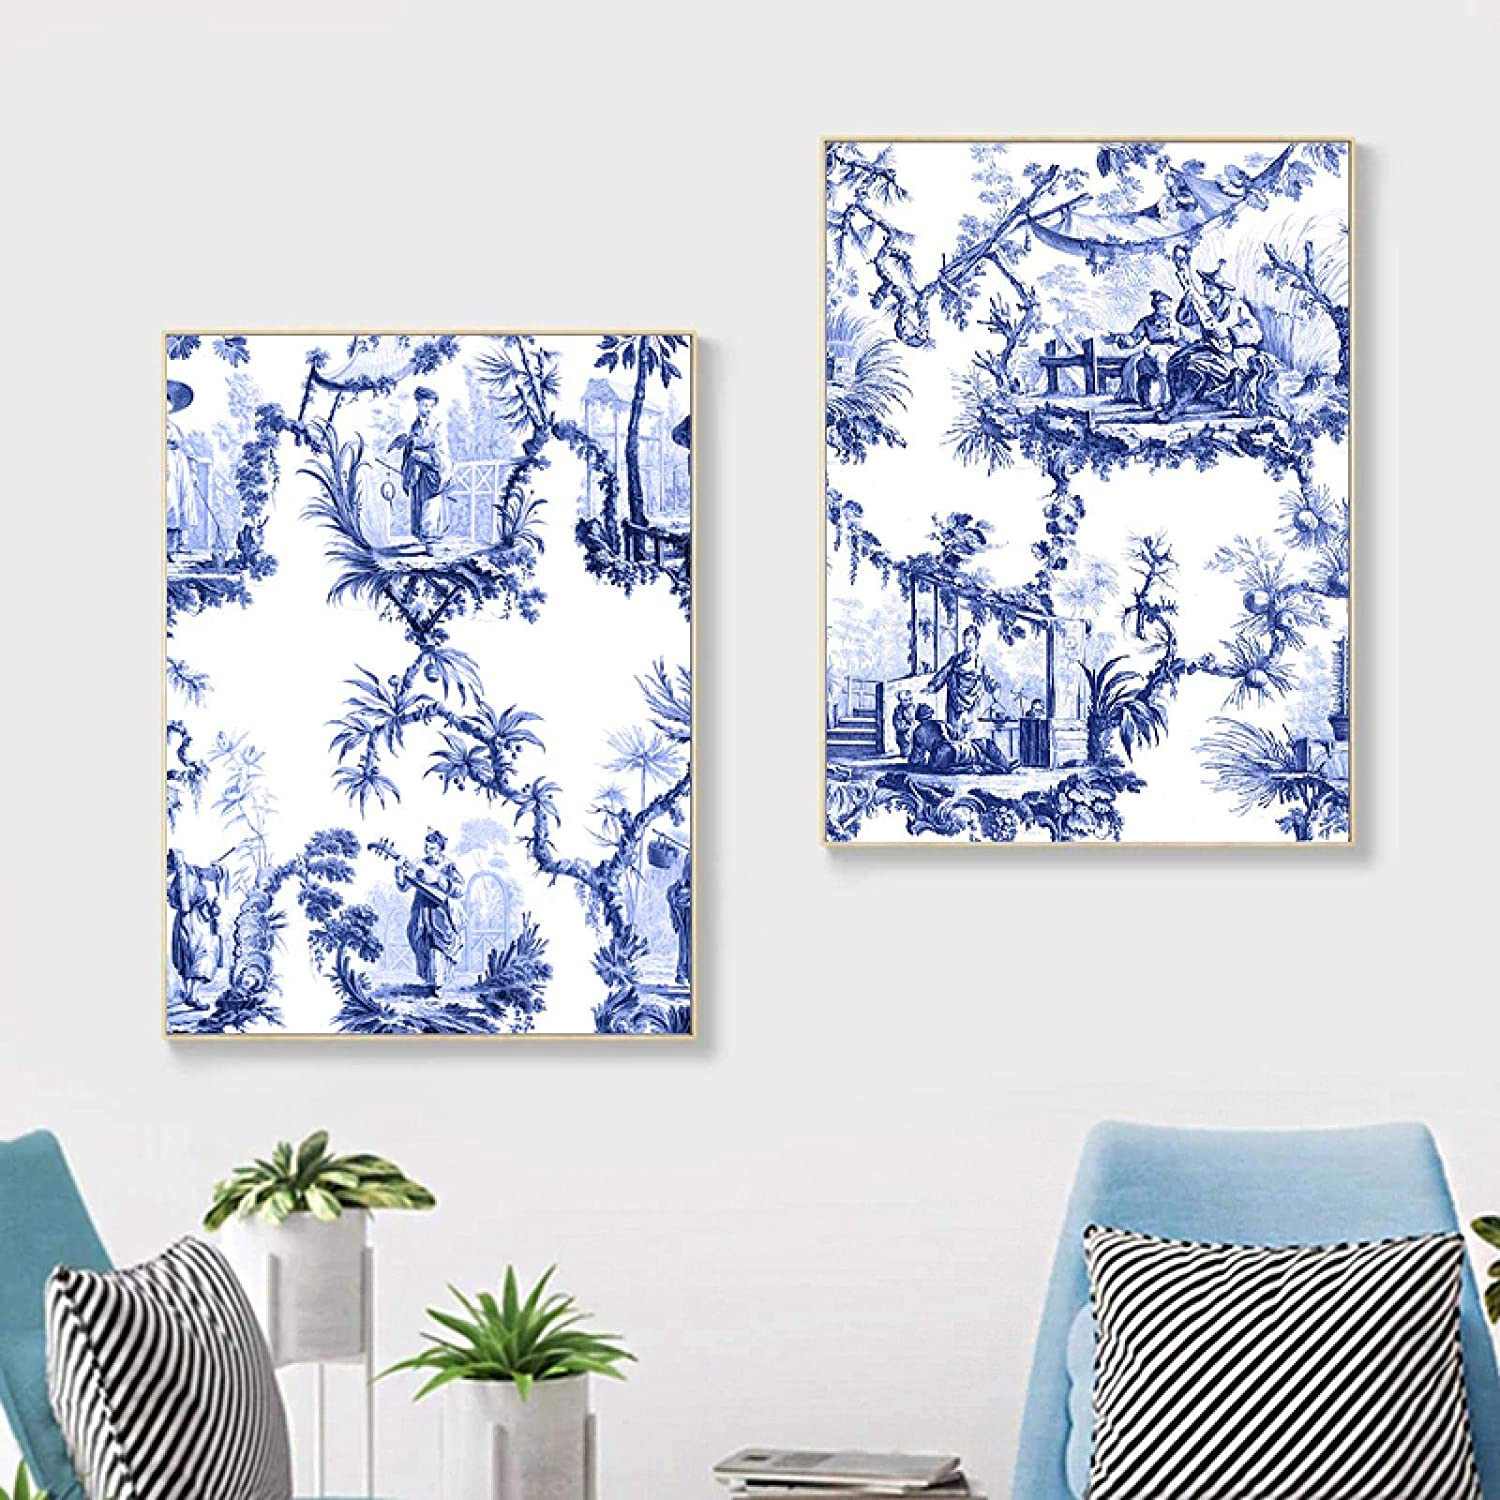 Chinese Blue and White Abstract Pictur Wall Paintings Oakland Mall Watercolor quality assurance